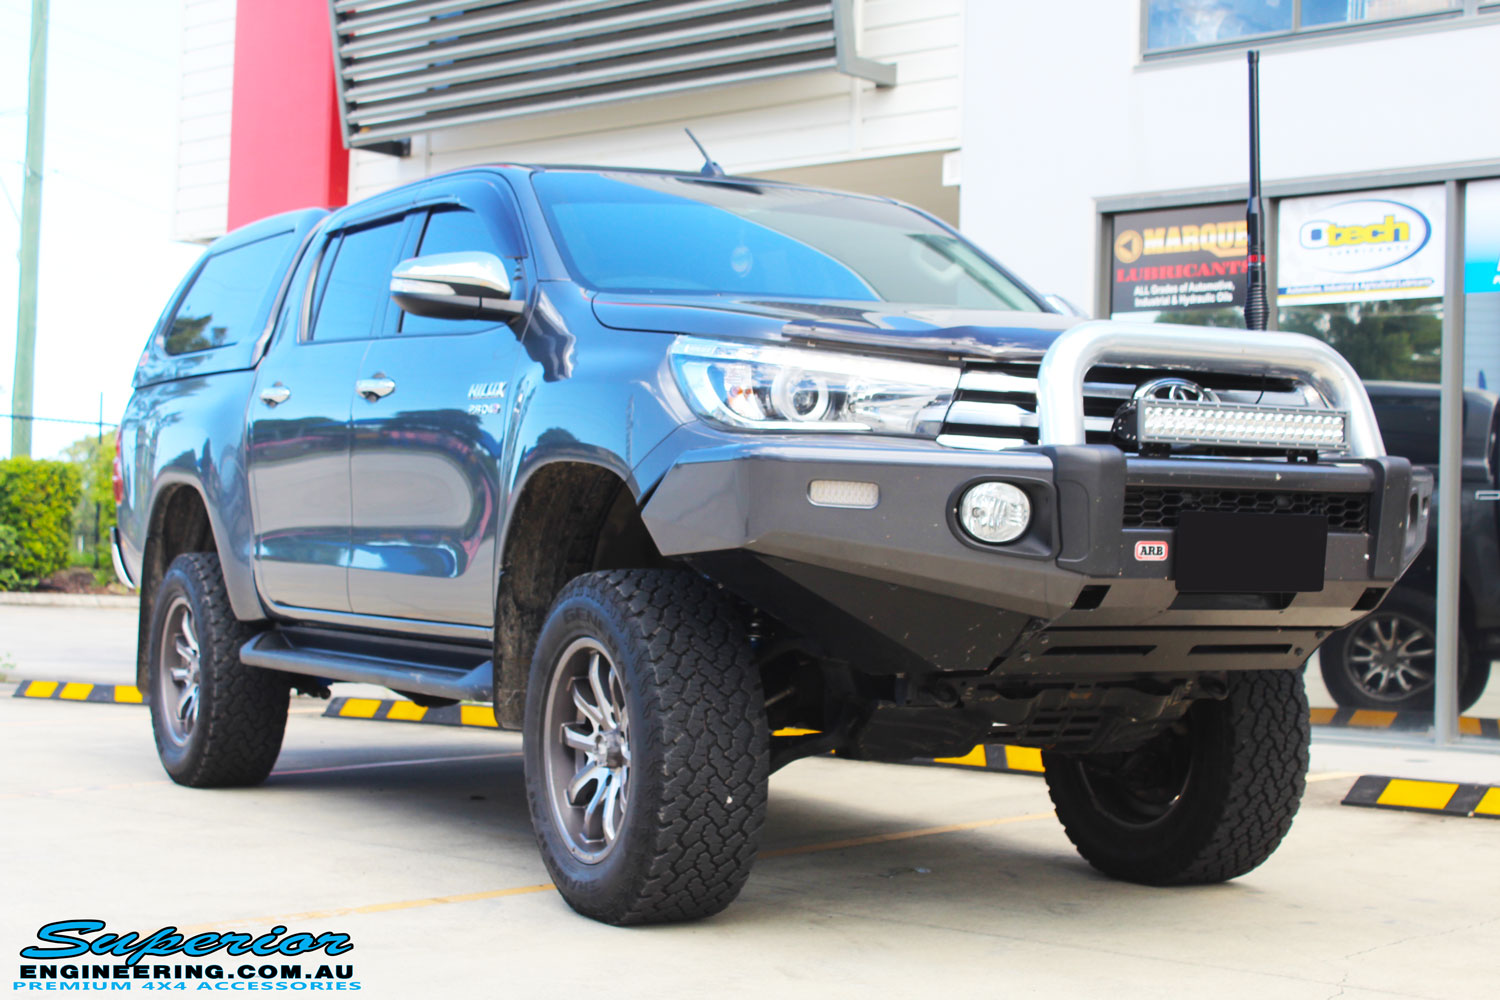 "Right front side view of a Grey Toyota Hilux Revo Dual Cab after fitment of a Superior Remote Reservoir 4"" Inch Lift Kit"